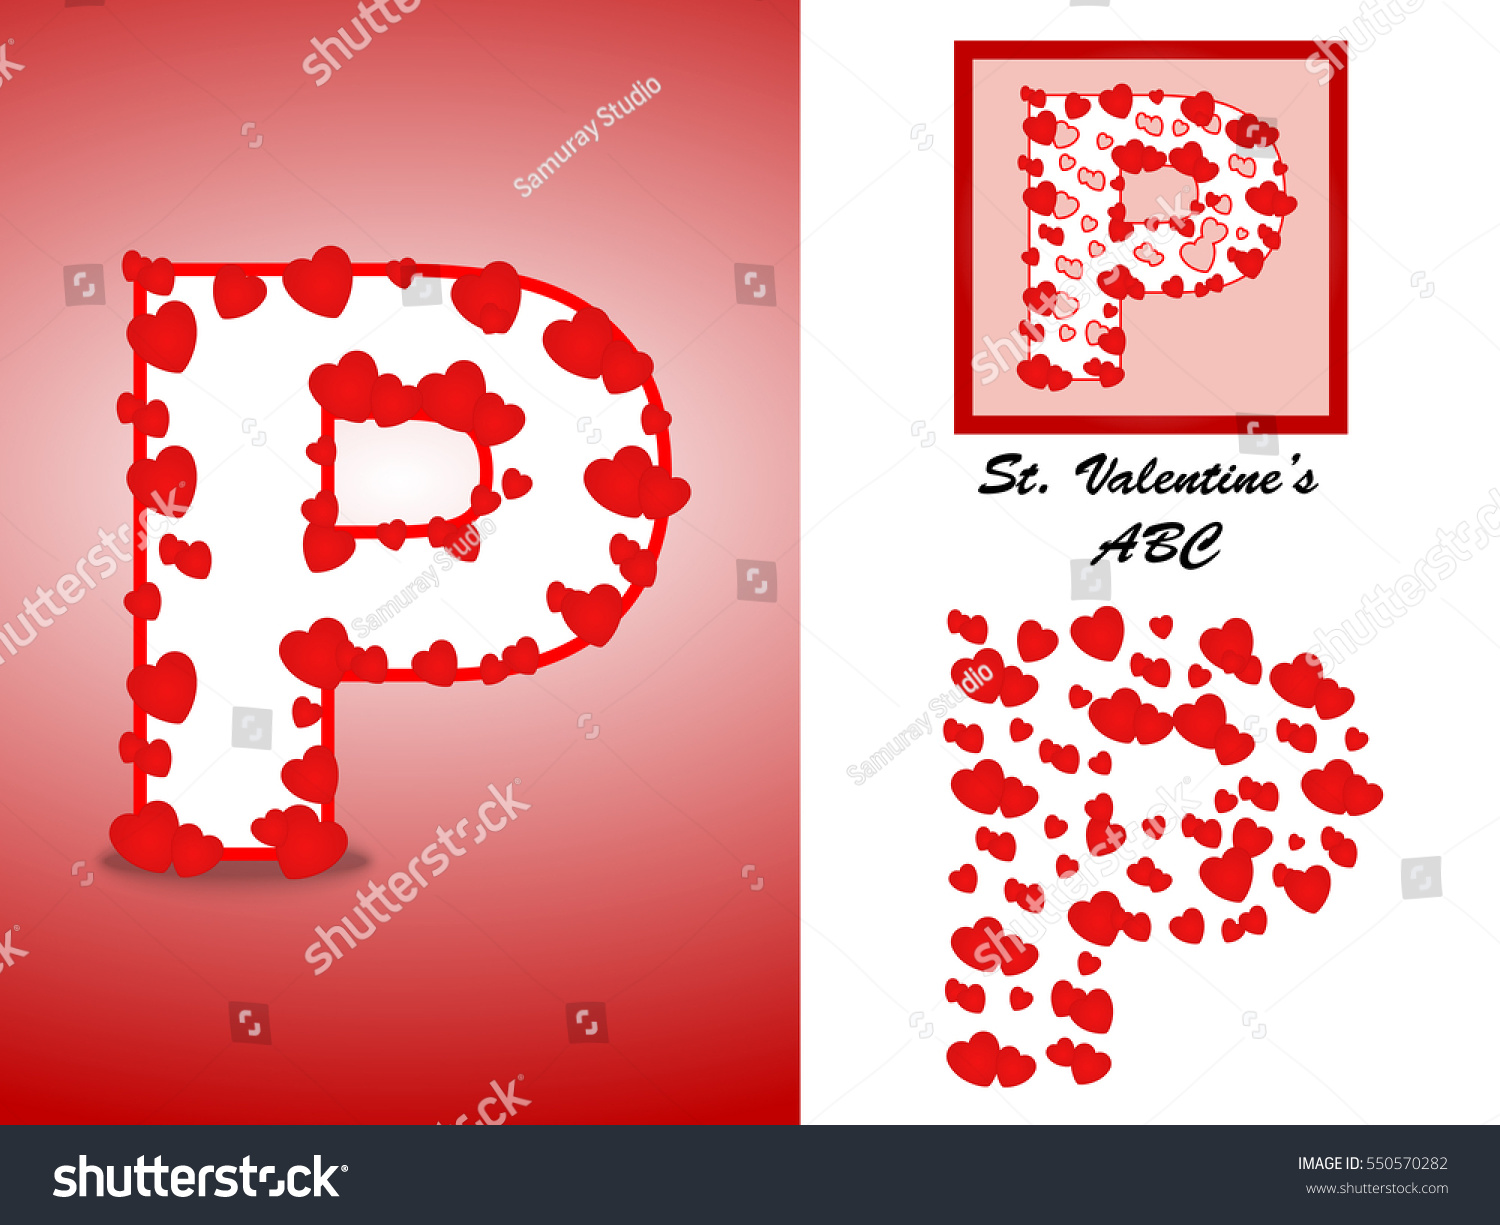 Alphabet Letter P Red Heart Valentine Stock Vector (Royalty Free ...